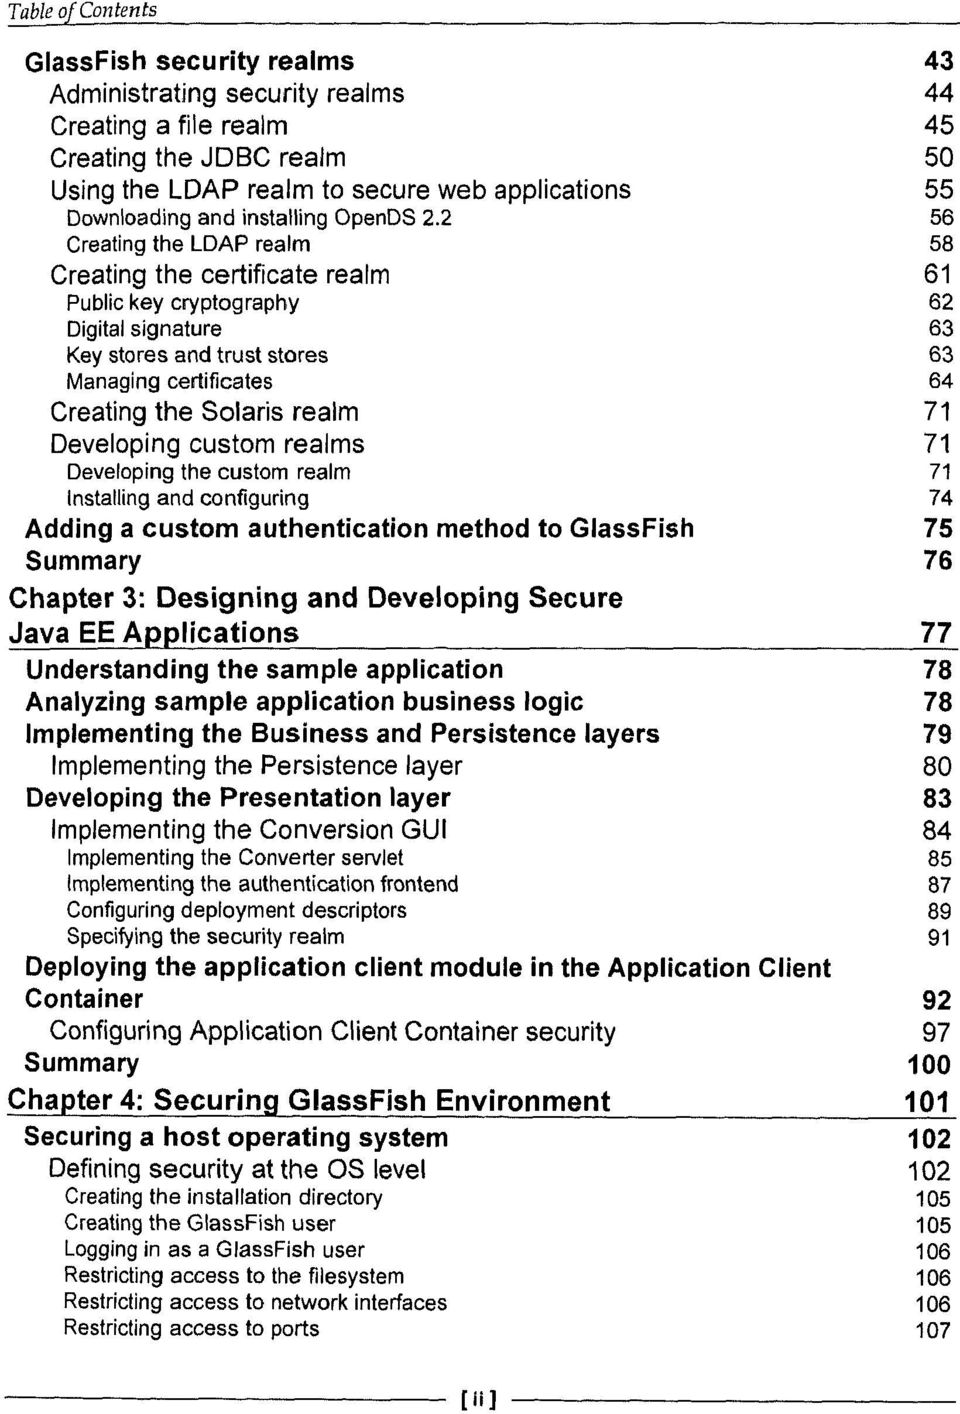 71 Developing custom realms 71 Developing the custom realm 71 Installing and configuring 74 Adding a custom authentication method to GlassFish 75 Summary 76 Chapter 3: Designing and Developing Secure